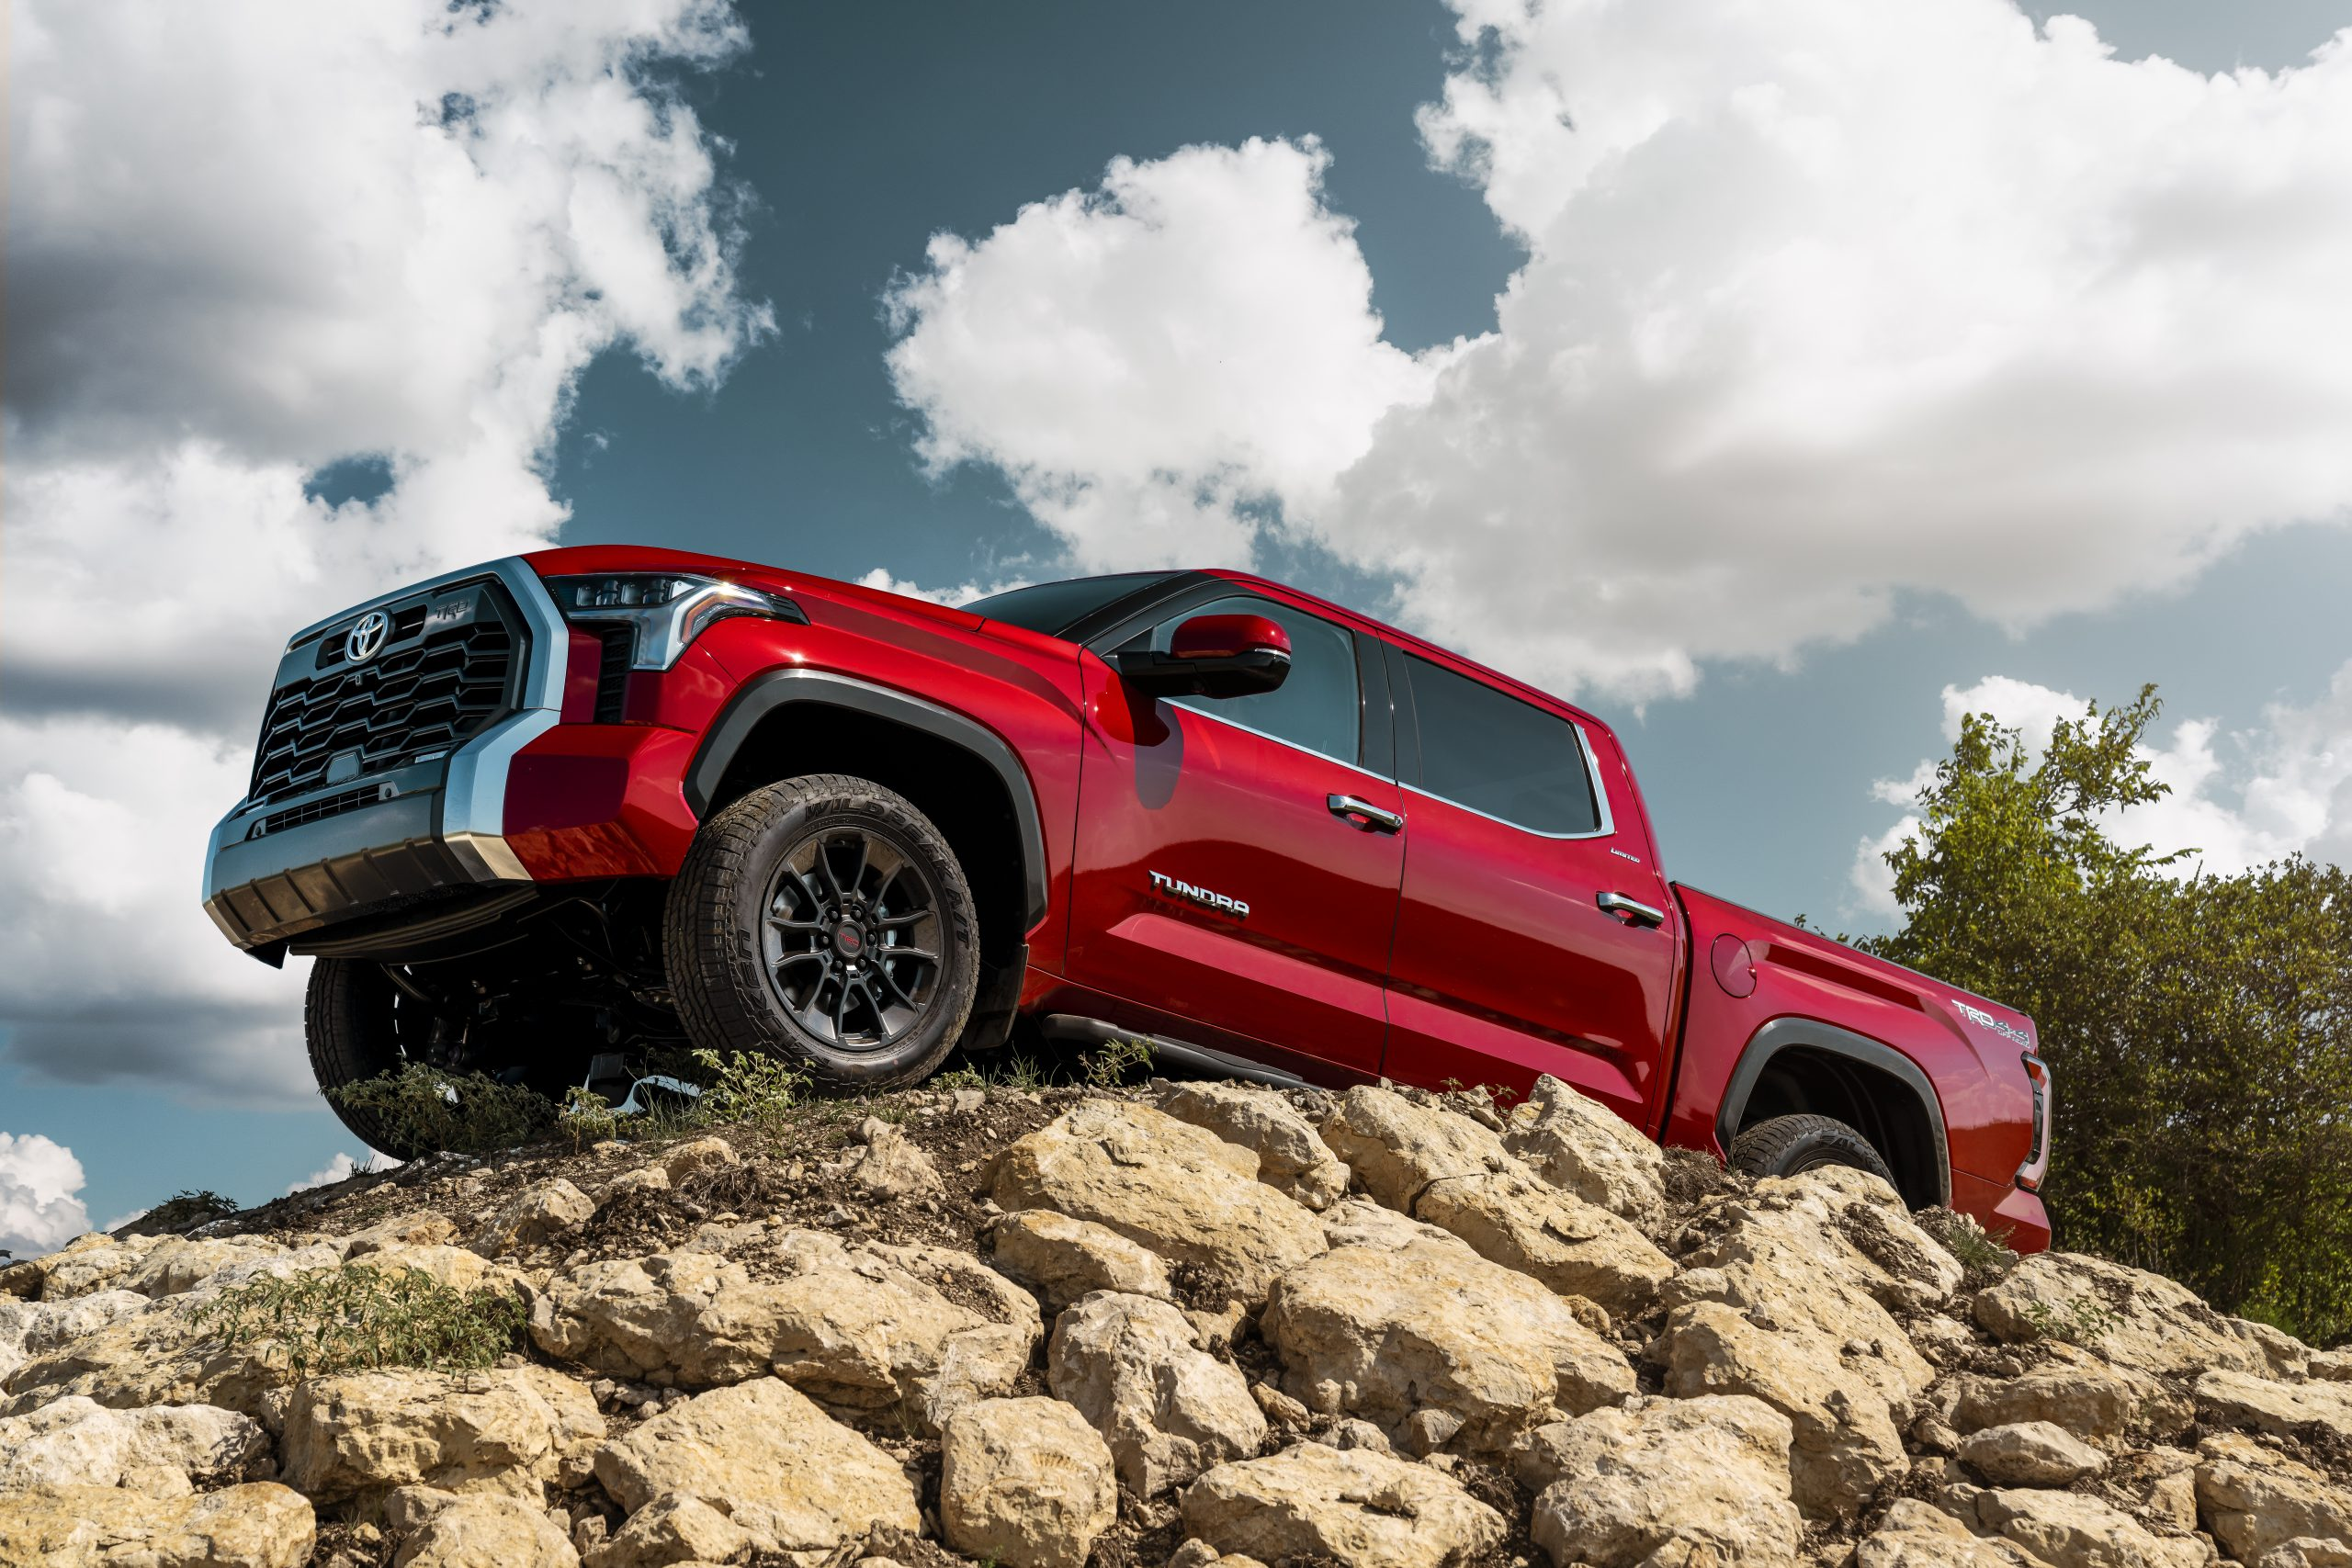 After months of teasing, Toyota reveals the third-generation Tundra